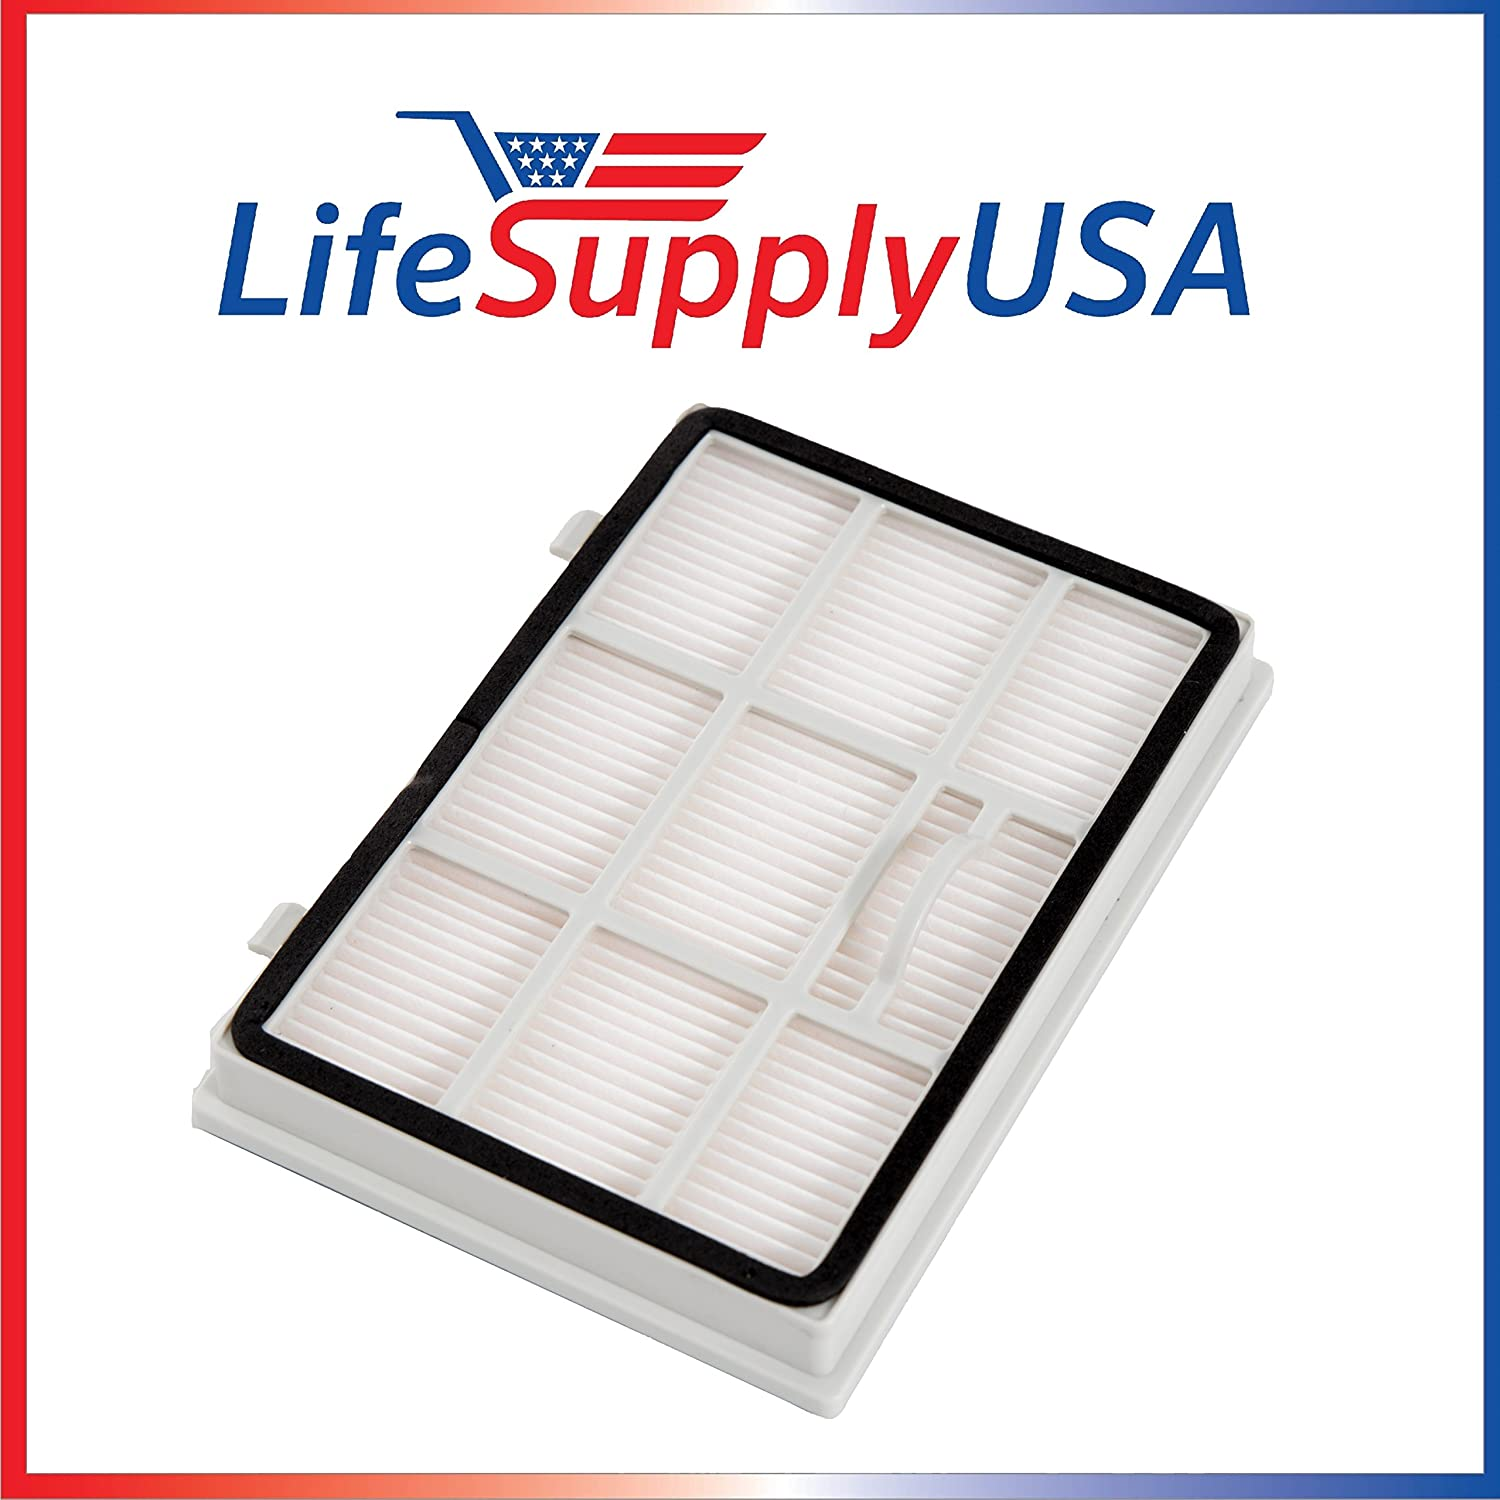 5 Pack Filter fits Kenmore 24194 KC38KDRDZ000 Exhaust HEPA Filter 24194 AC38KDRZ000 24194 by LifeSupplyUSA